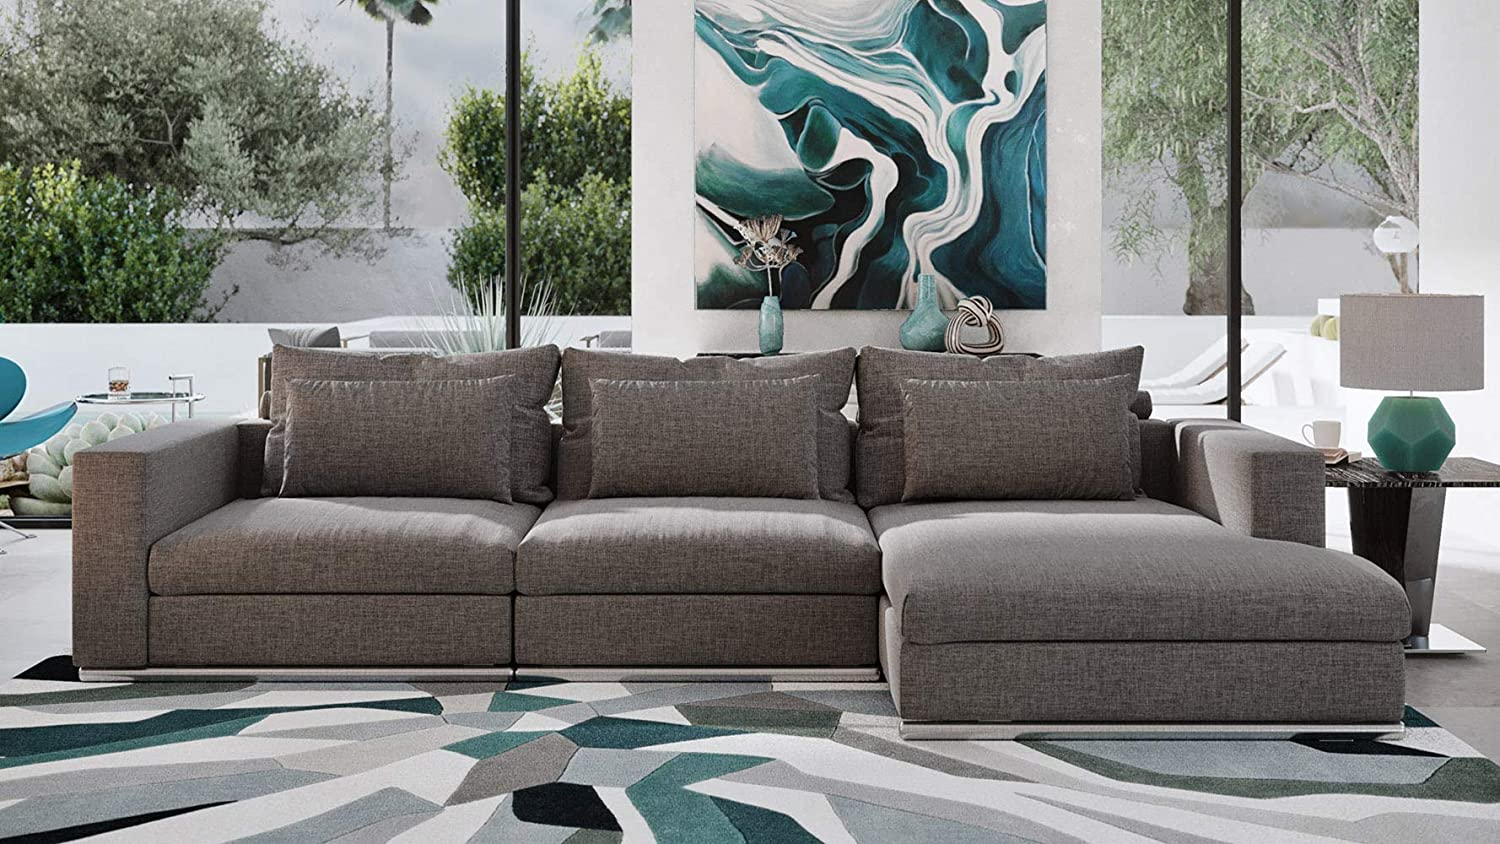 Zuri Furniture Soriano Right Chaise Sectional in Gray Fabric